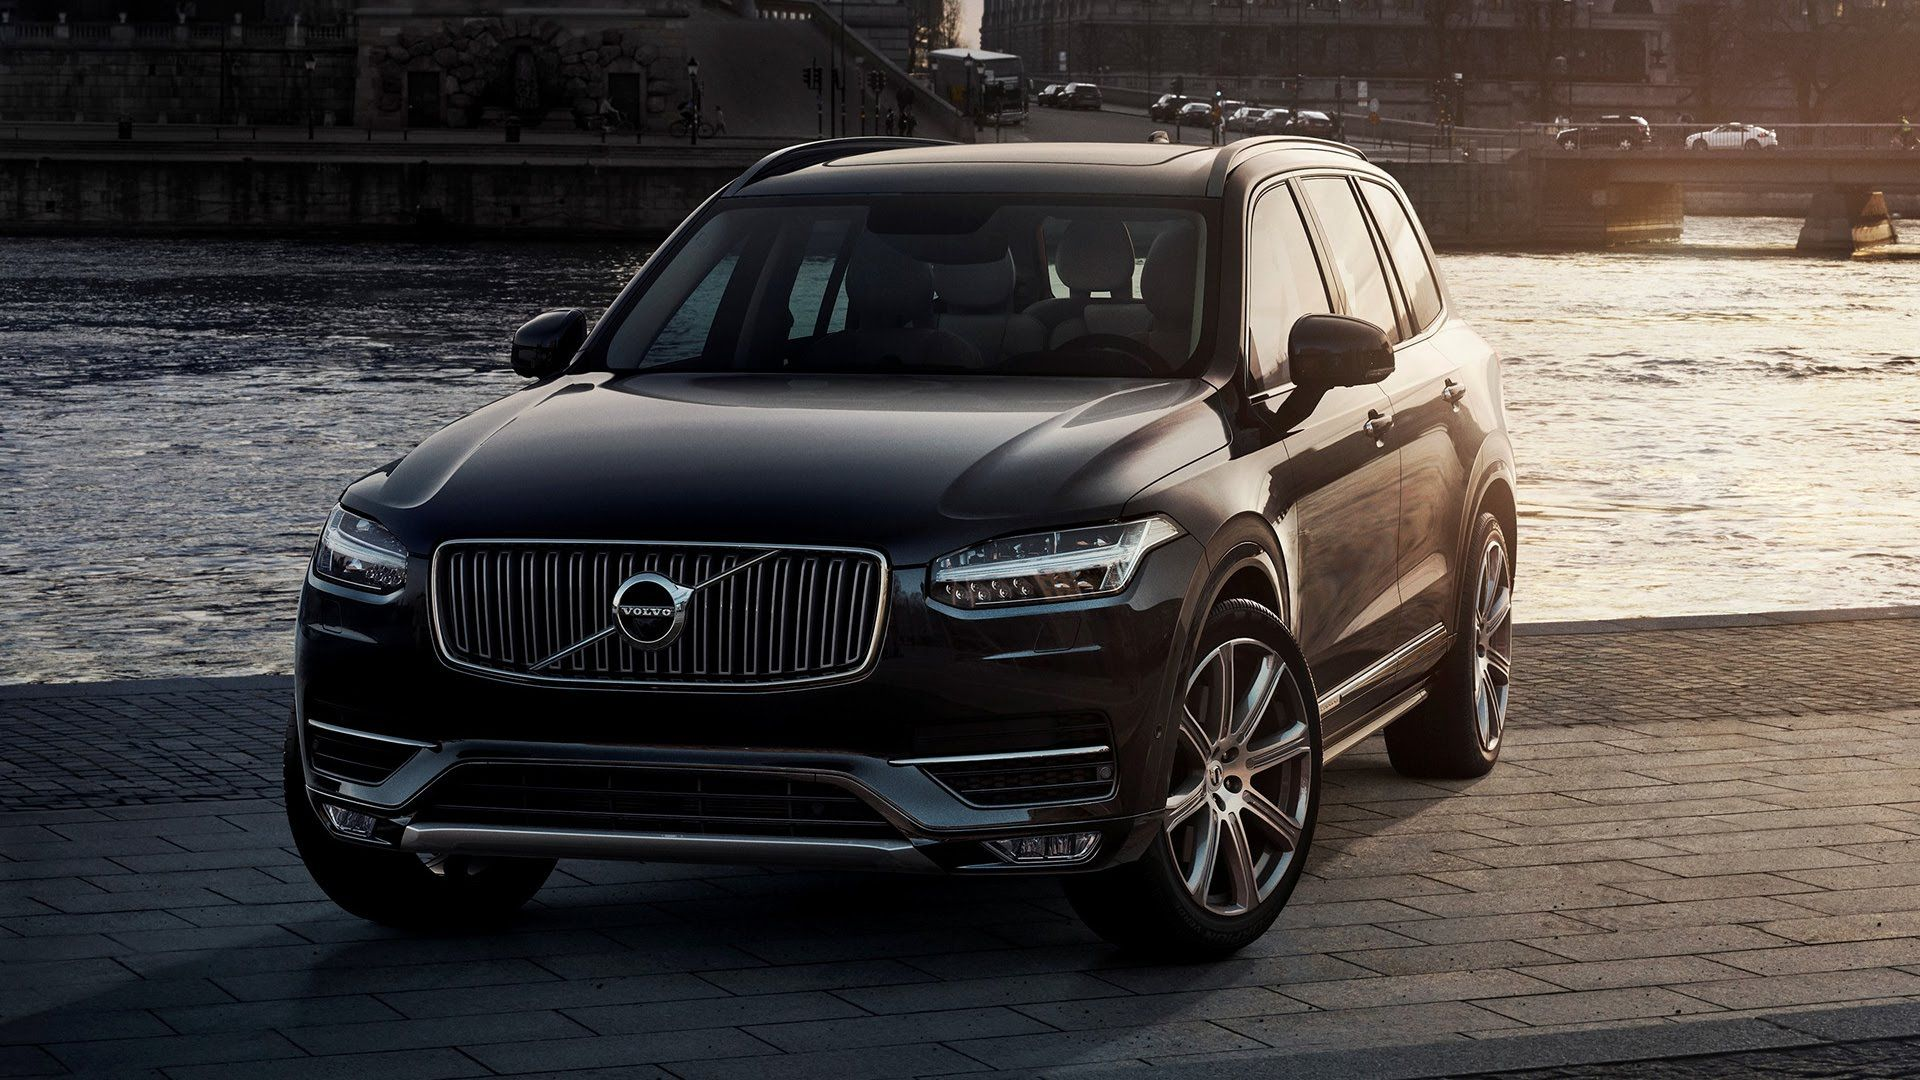 Volvo suv volvo xc90 auto news luxury cars vehicles html the o jays the top bike news